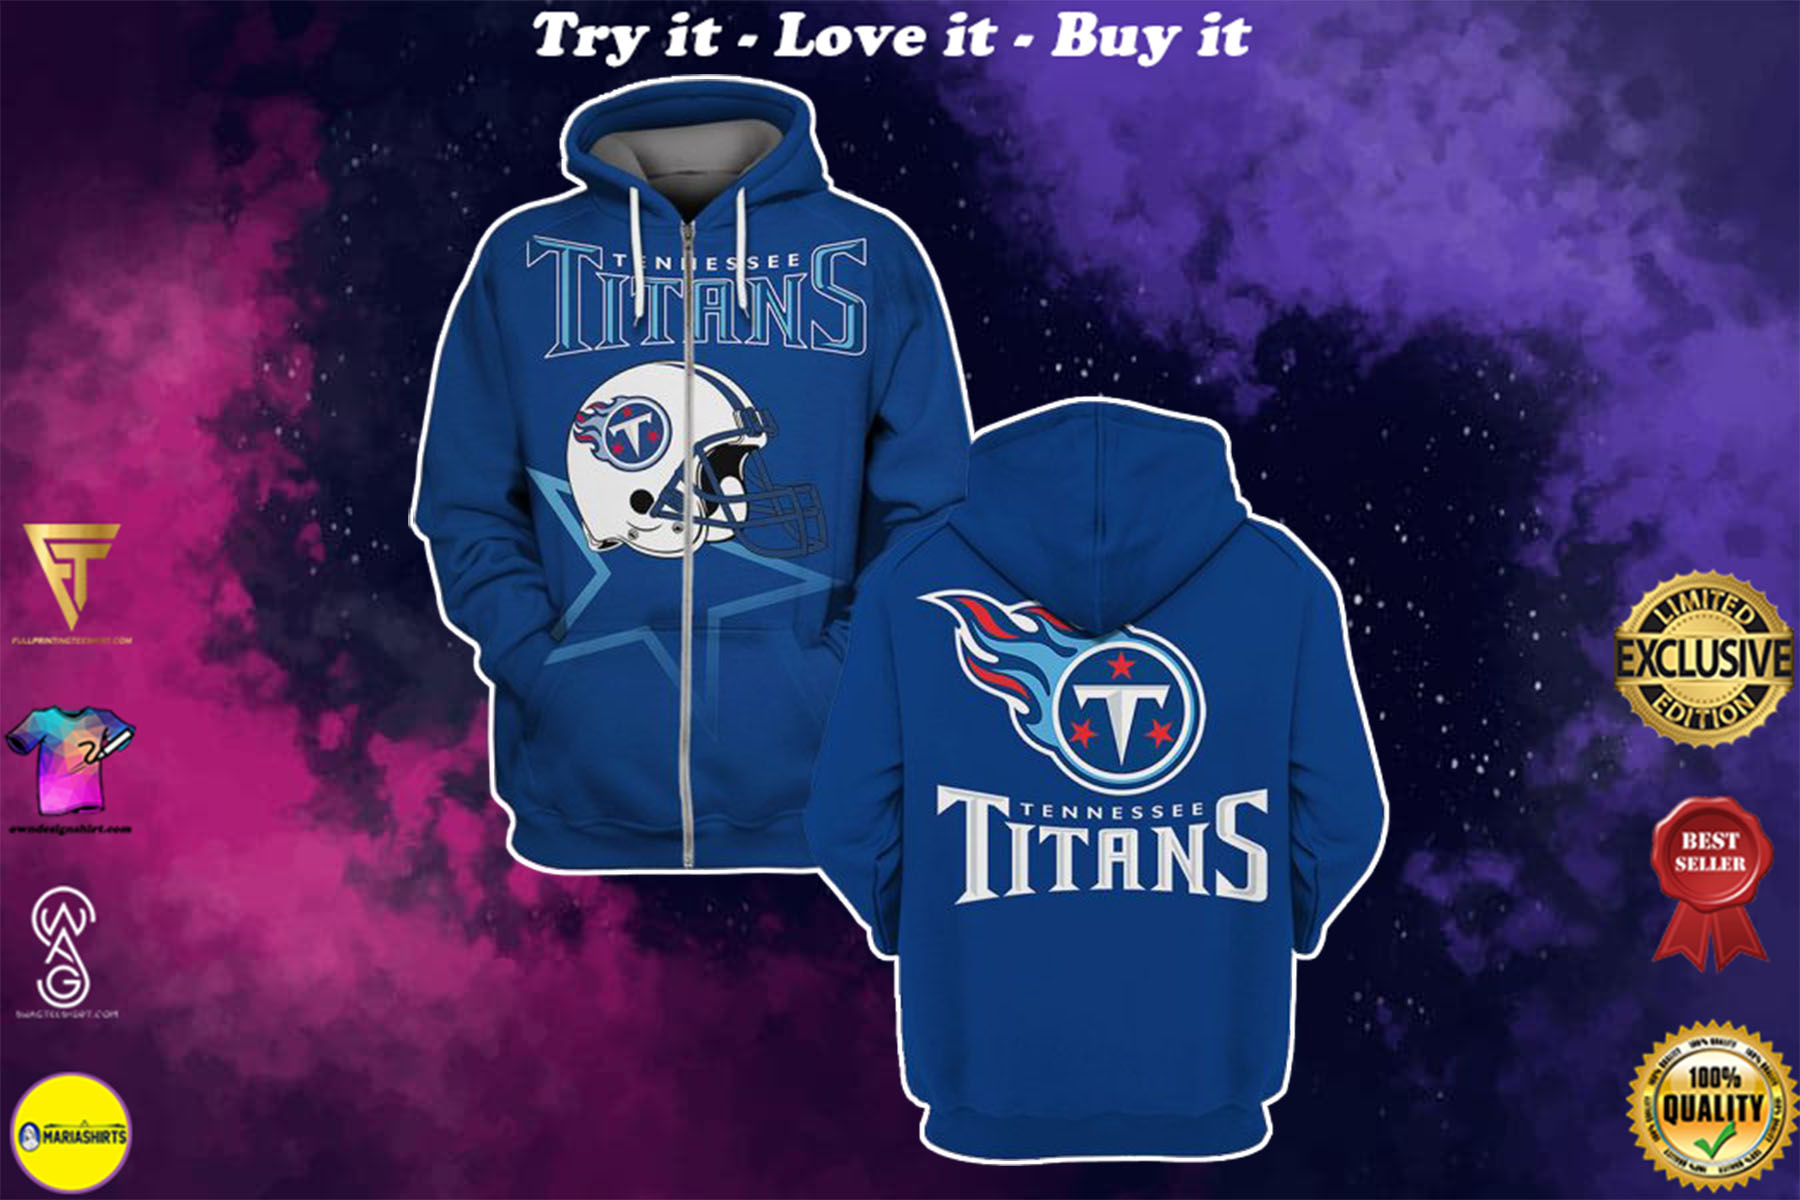 [special edition] national football league tennessee titans helmet full over printed shirt - maria